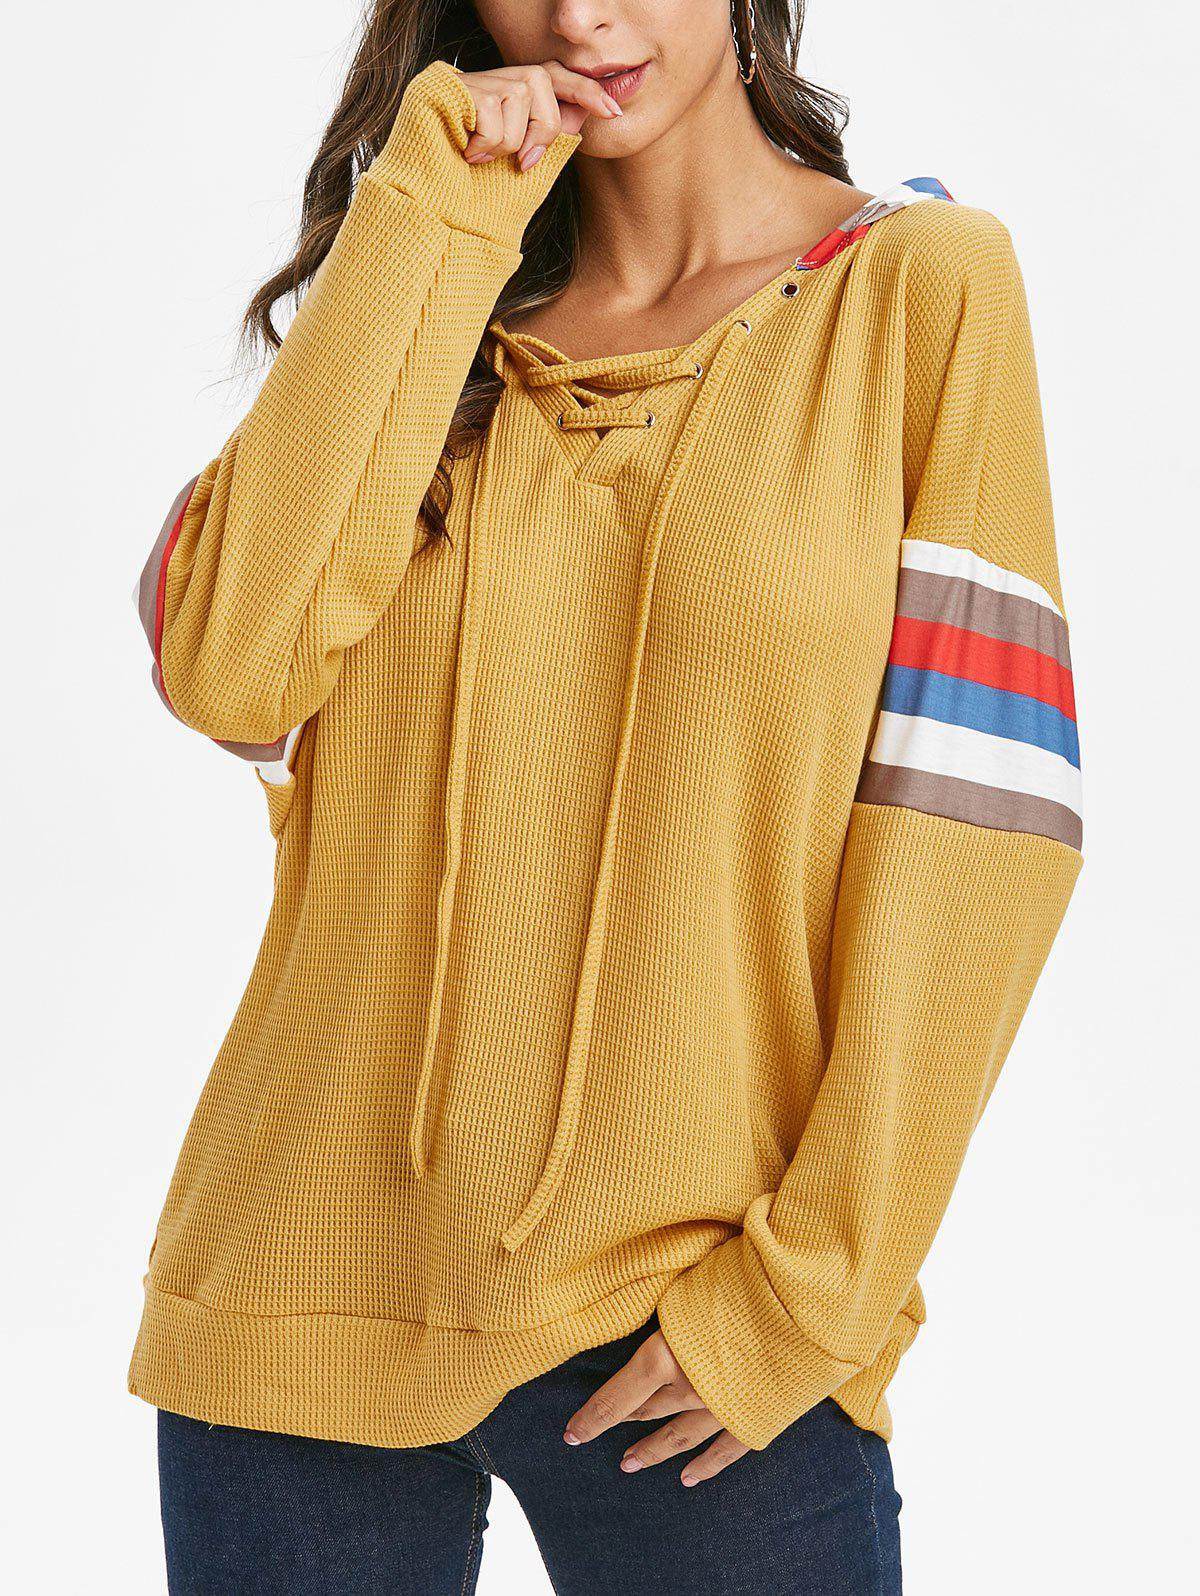 Lace Up Striped Loose Hoodie - GOLDEN BROWN S